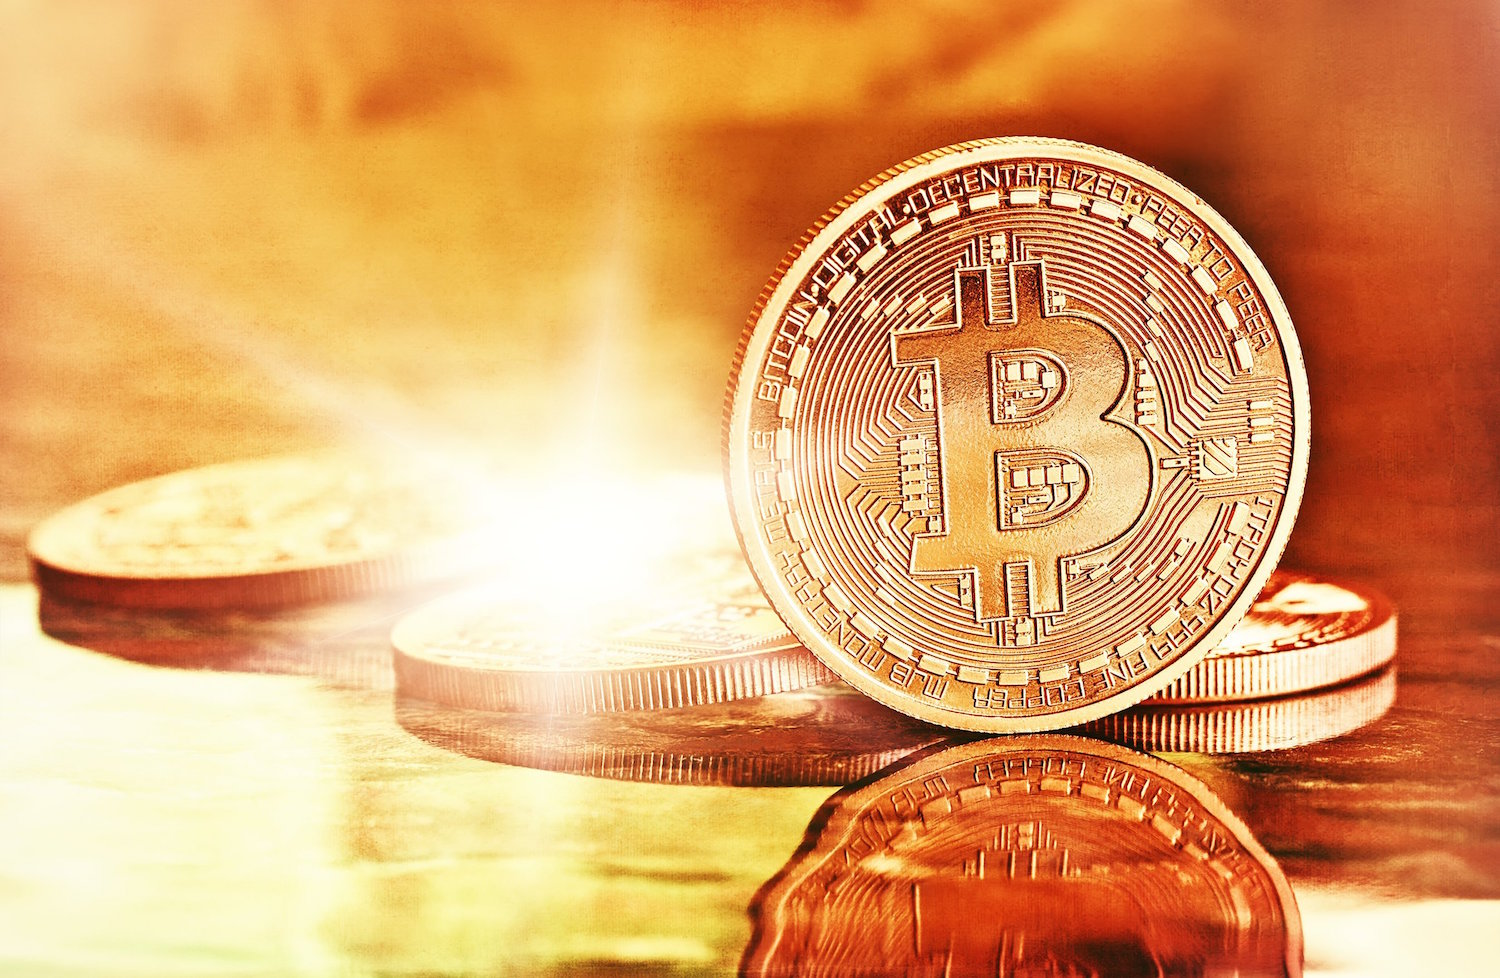 Bitcoin's Price Snaps Longest Daily Win Streak Since 2018